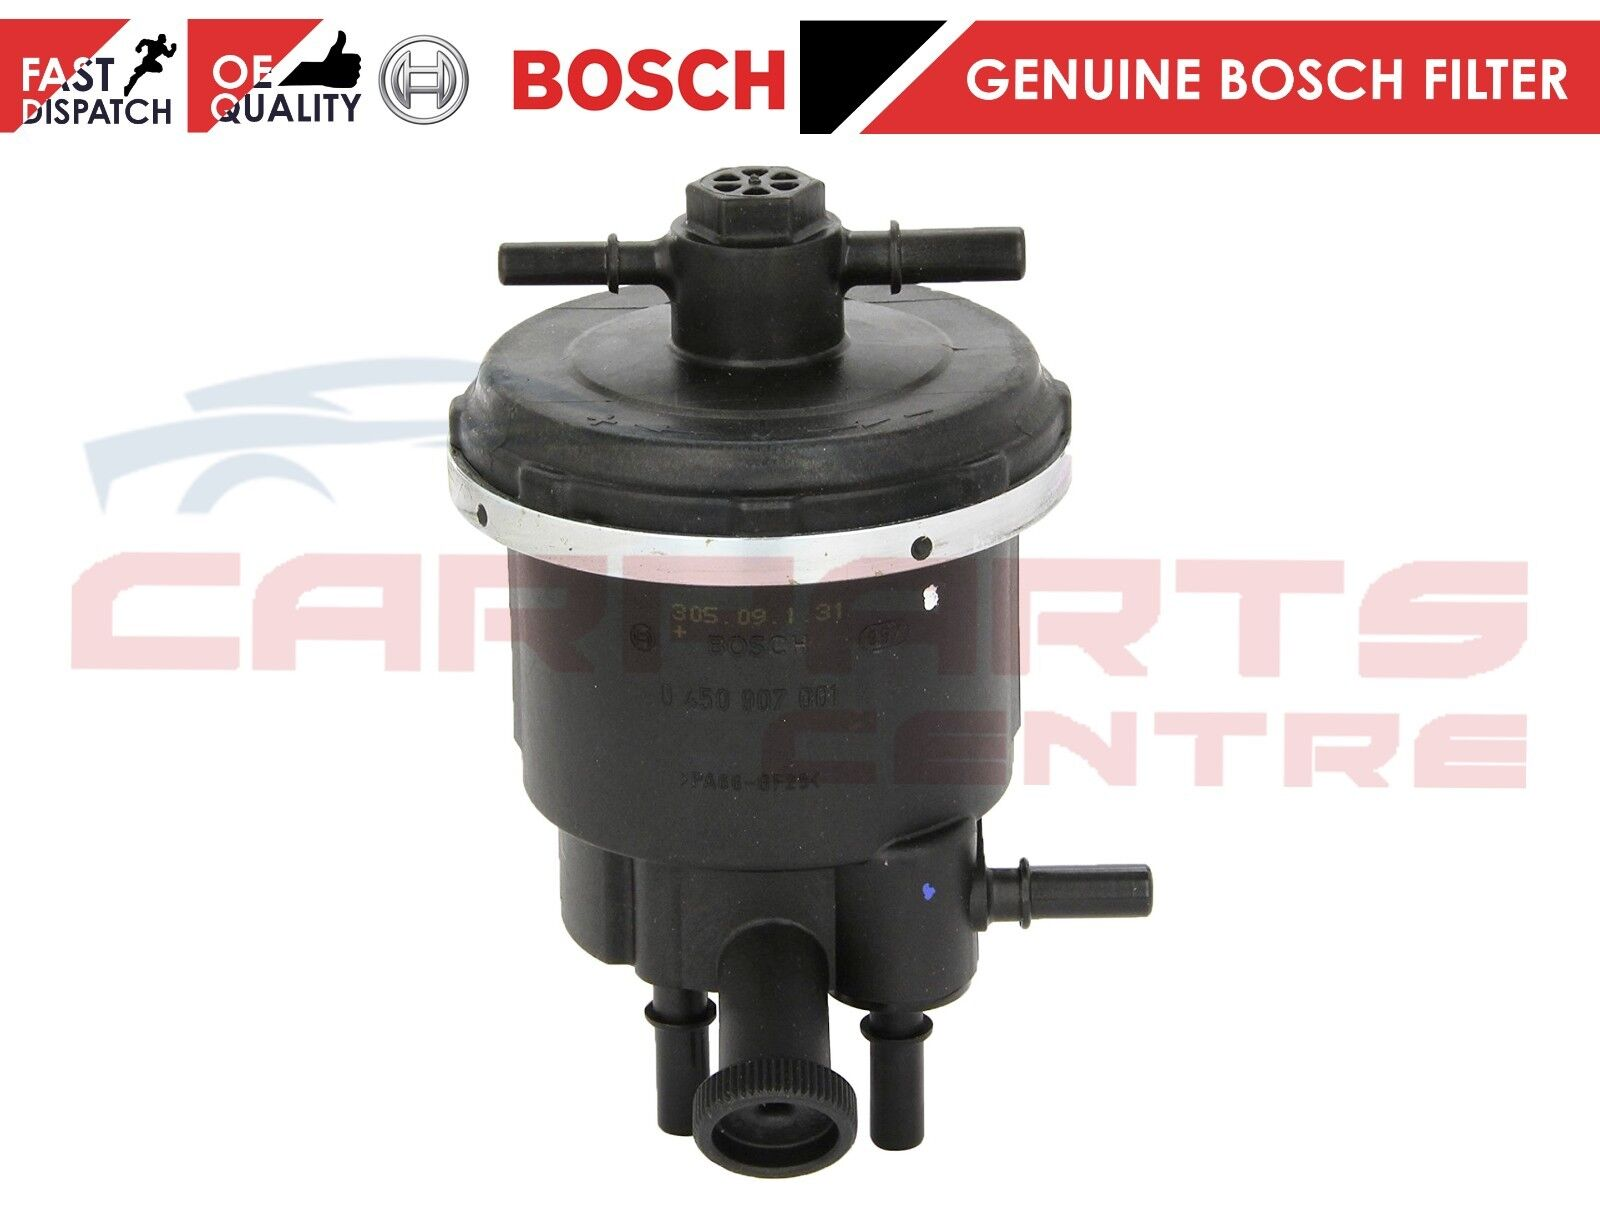 FOR FIAT SCUDO ULYSEE 2.0 JTD FUEL FILTER COMPLETE HOUSING & FUEL FILTER  BOSCH